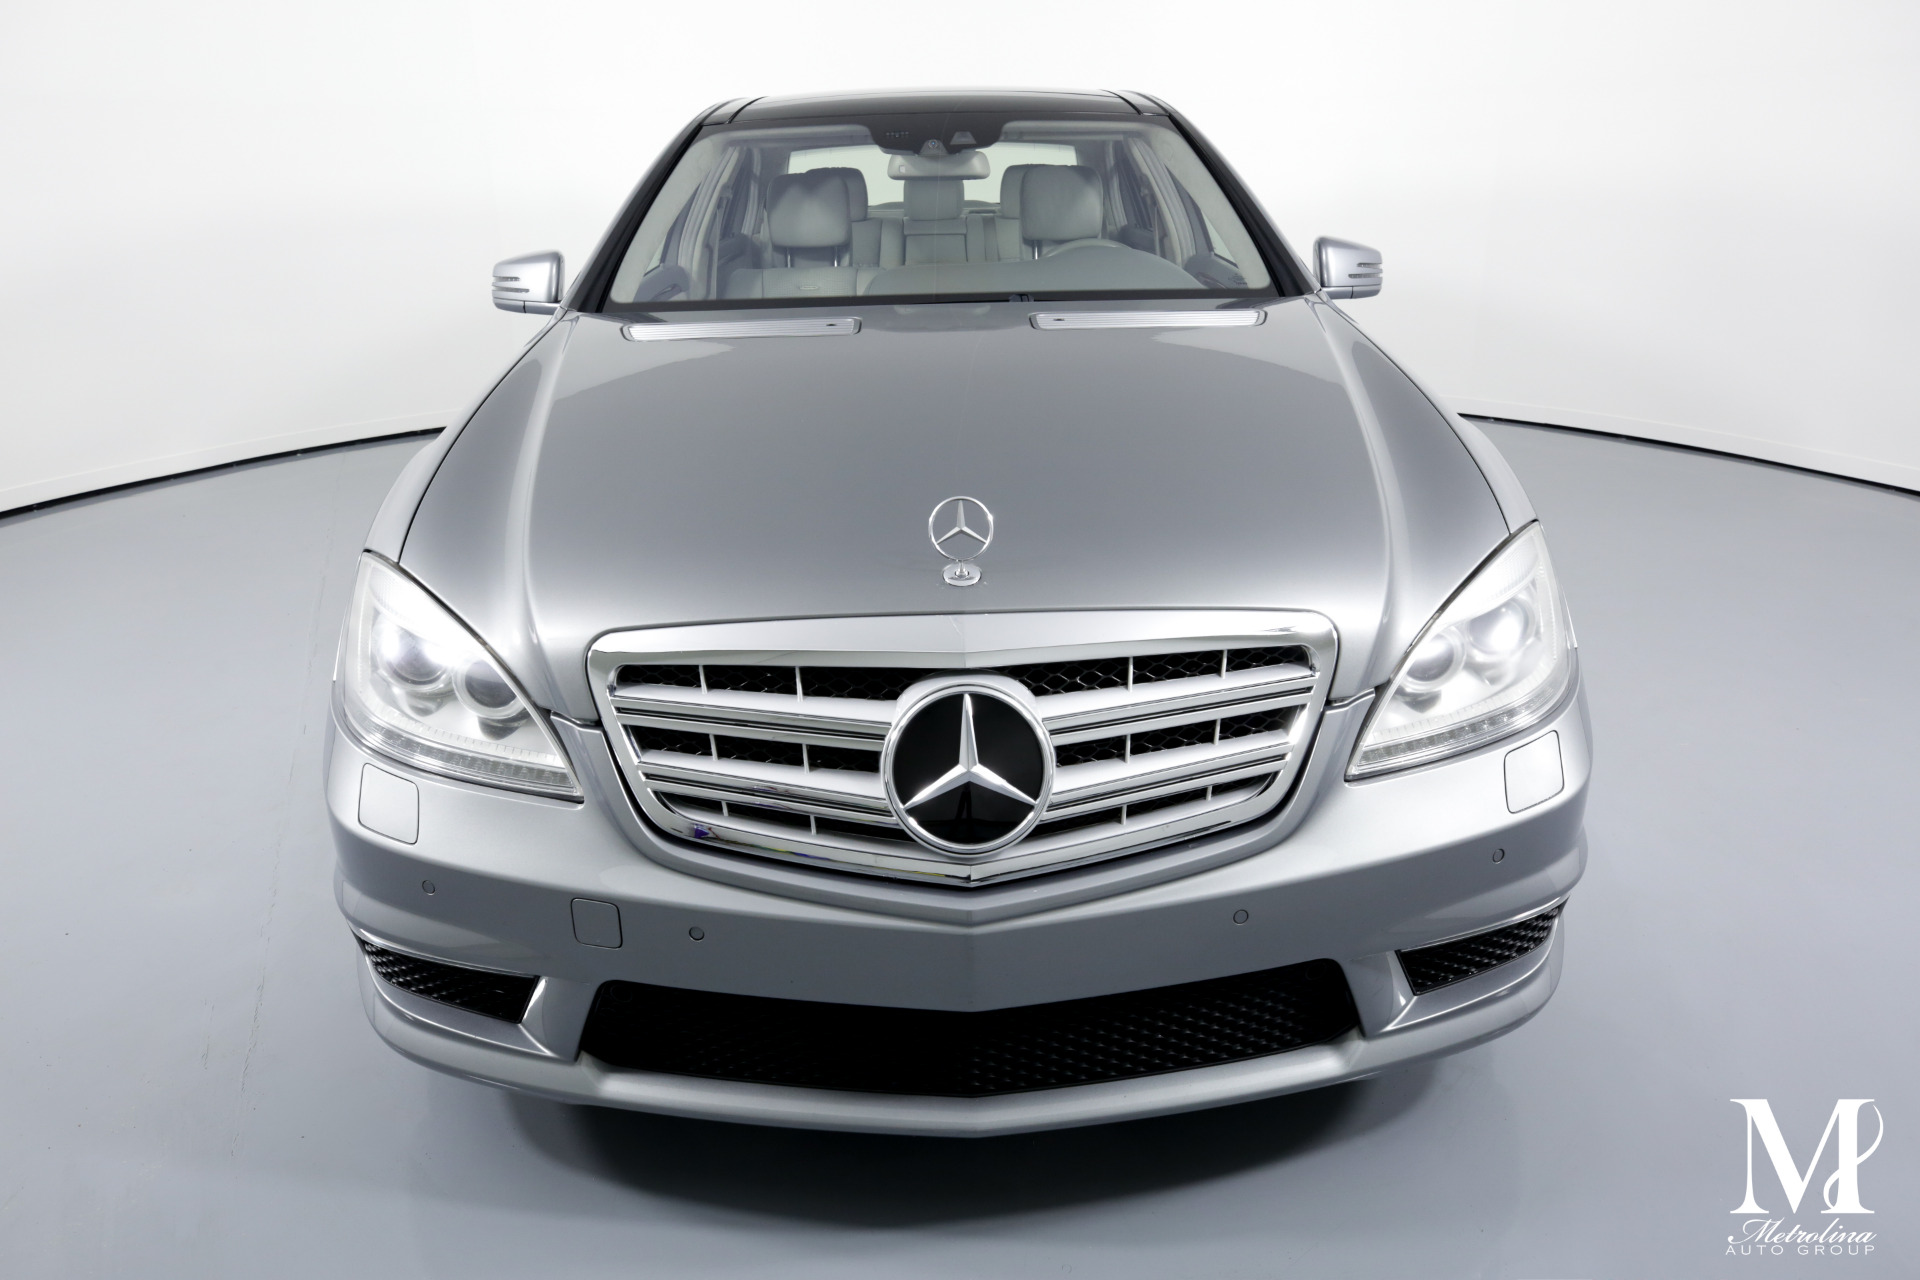 Used 2010 Mercedes-Benz S-Class S 65 AMG for sale Sold at Metrolina Auto Group in Charlotte NC 28217 - 3